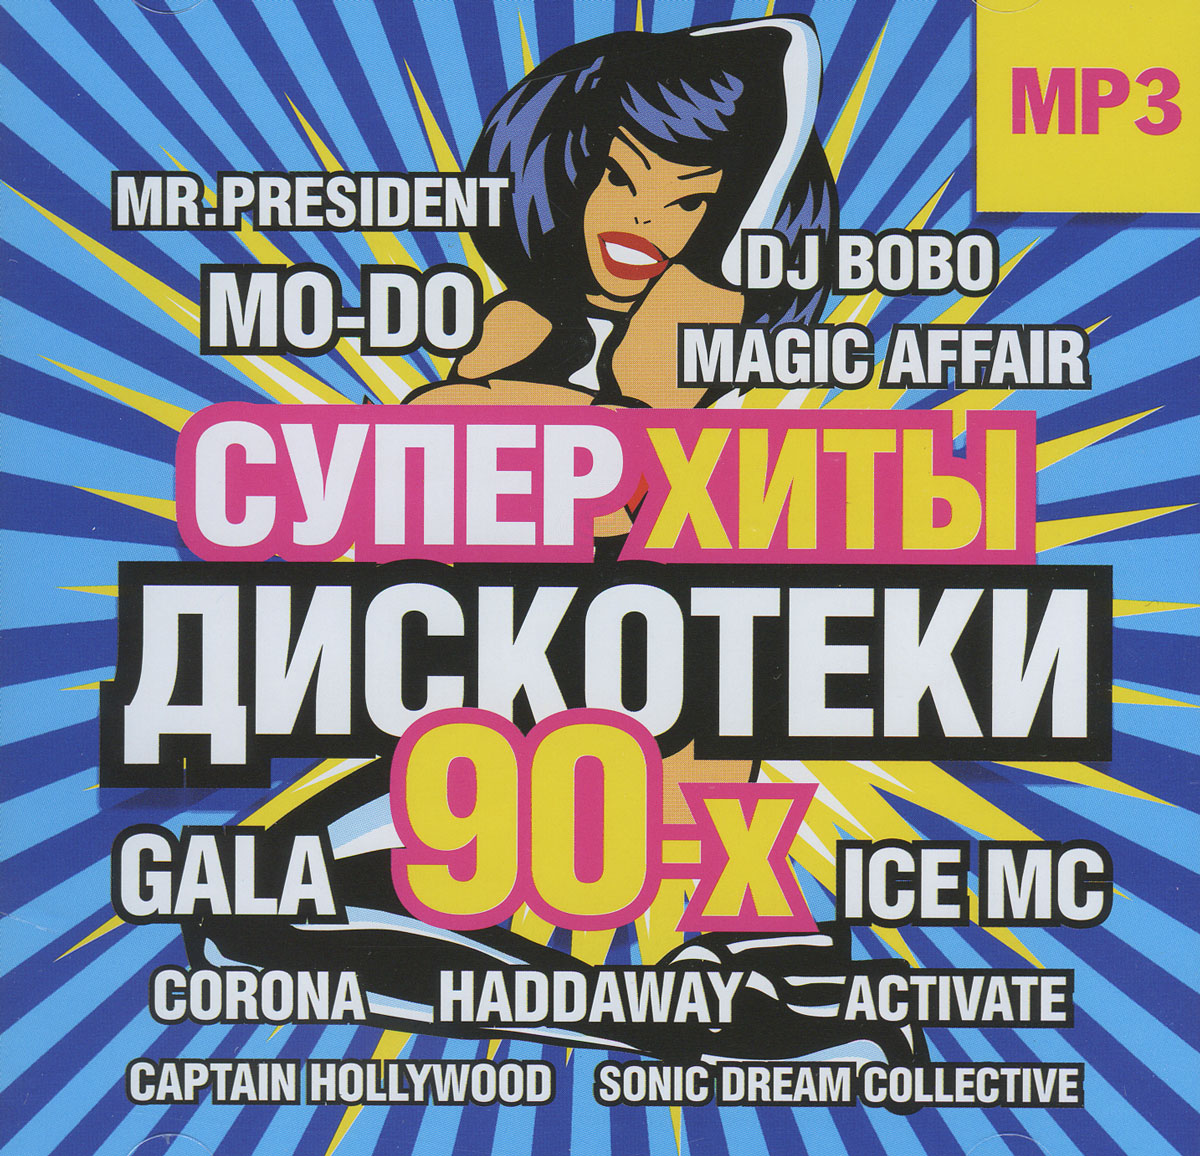 Mr. President,Ice MC Icemc,DJ Bobo,Dj Miko,Radiorama,Haddaway,Captain Hollywood Суперхиты дискотеки 90-х. Часть 2 (mp3)